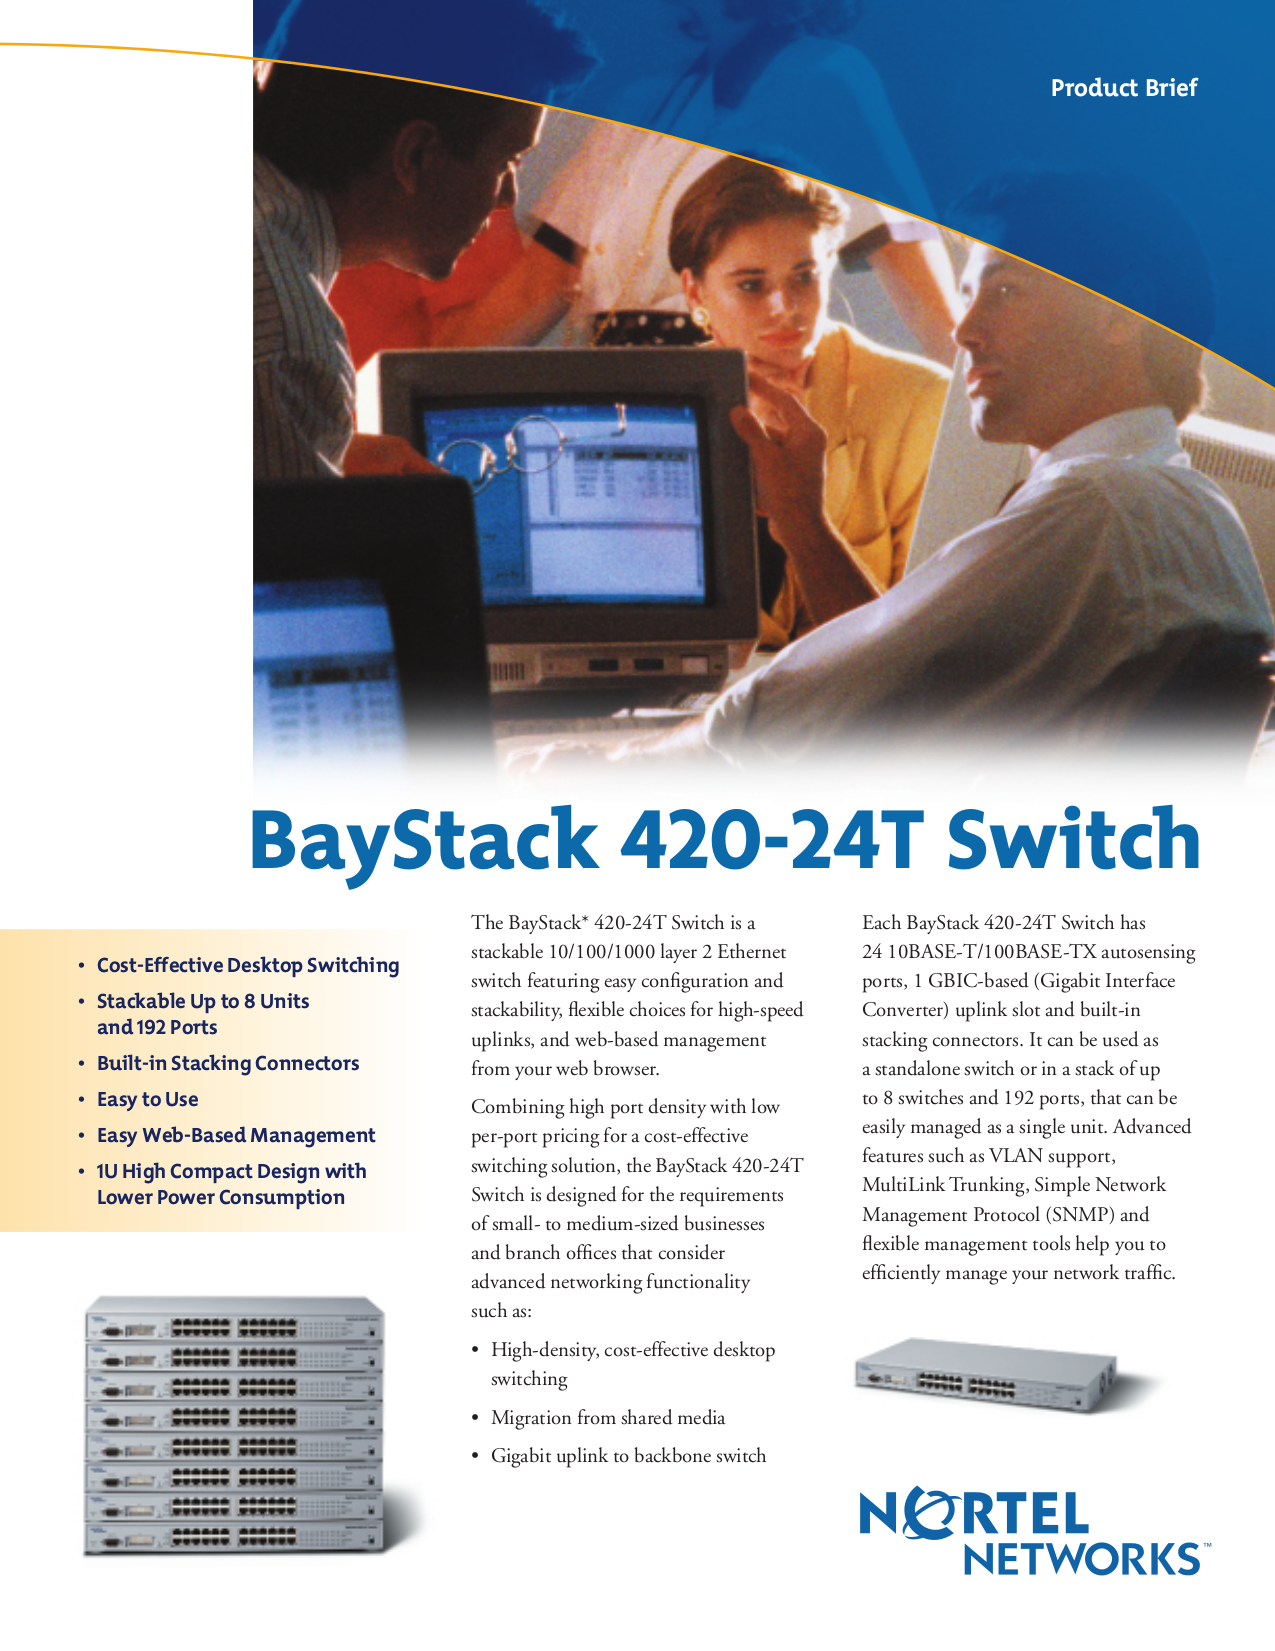 pdf for Nortel Switch BayStack 420-24T manual